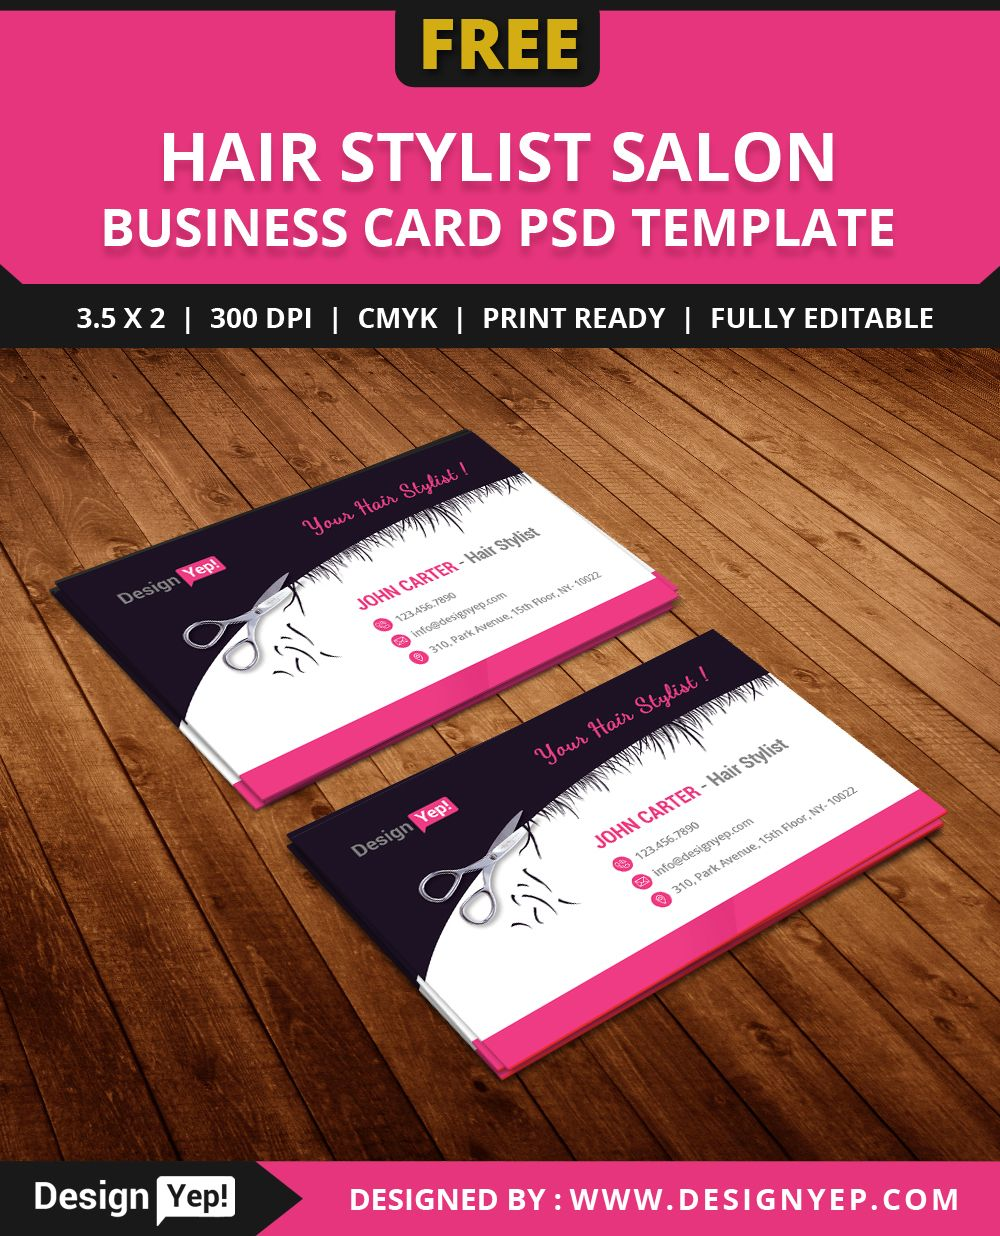 Free hair stylist salon business card template psd free business free hair stylist salon business card template psd flashek